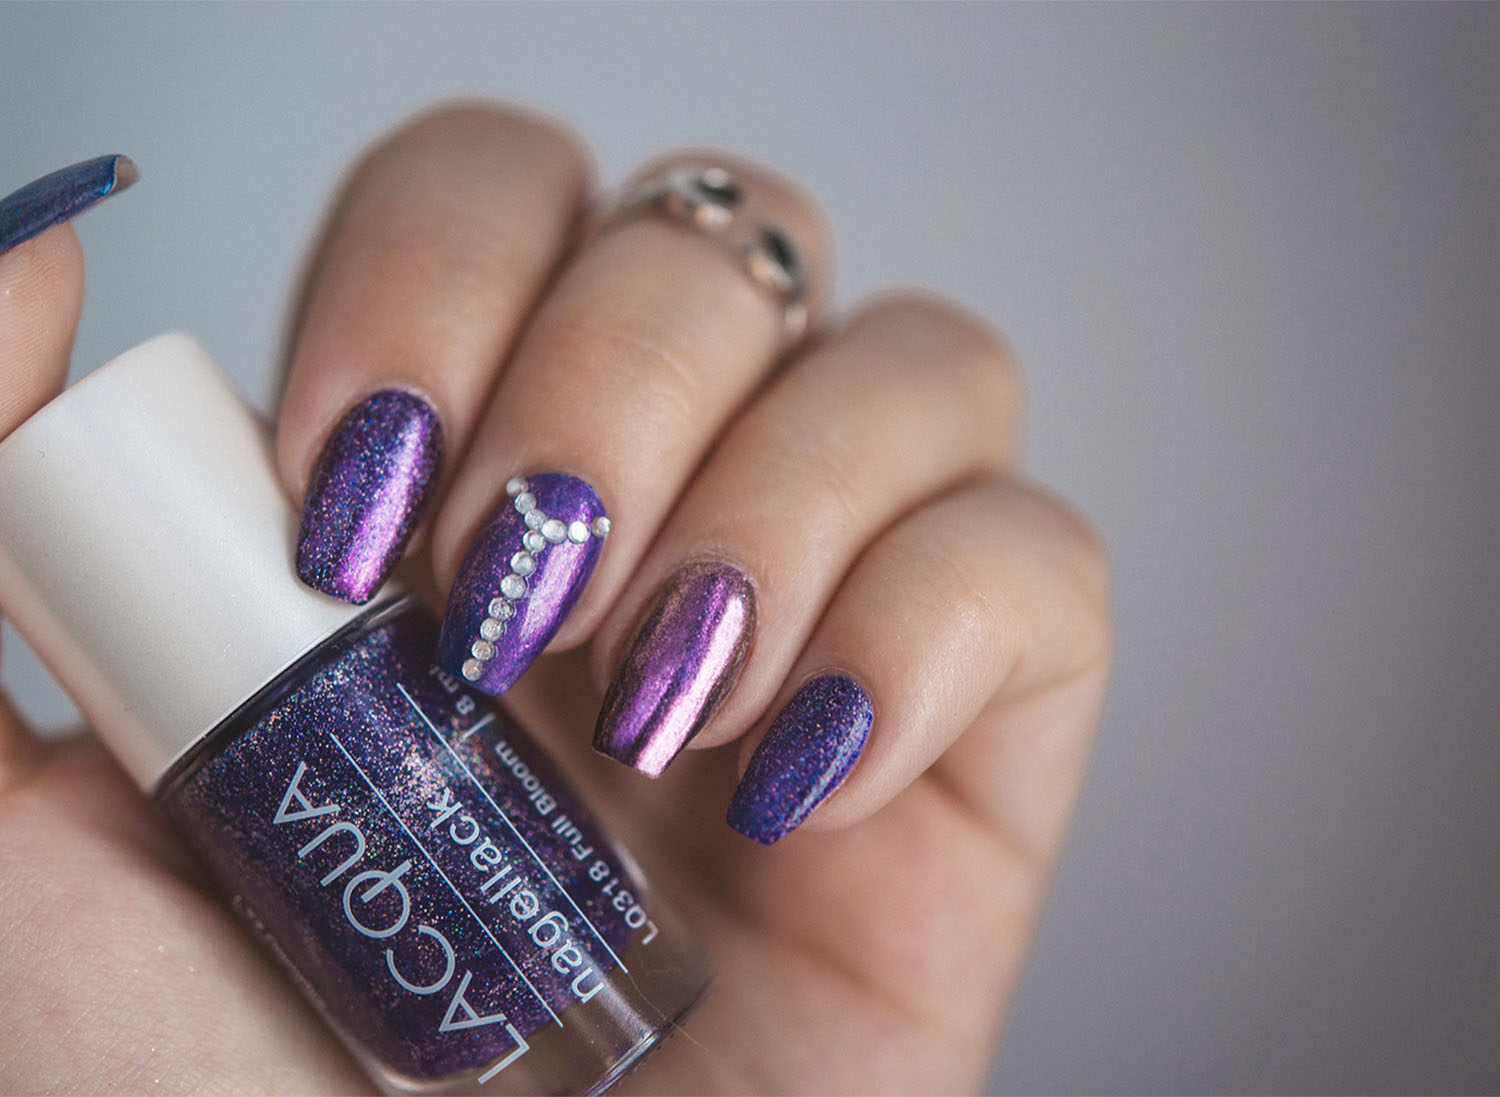 Lacqua Full Bloom & Lachrome - Purple Chrome & Glitter Nails